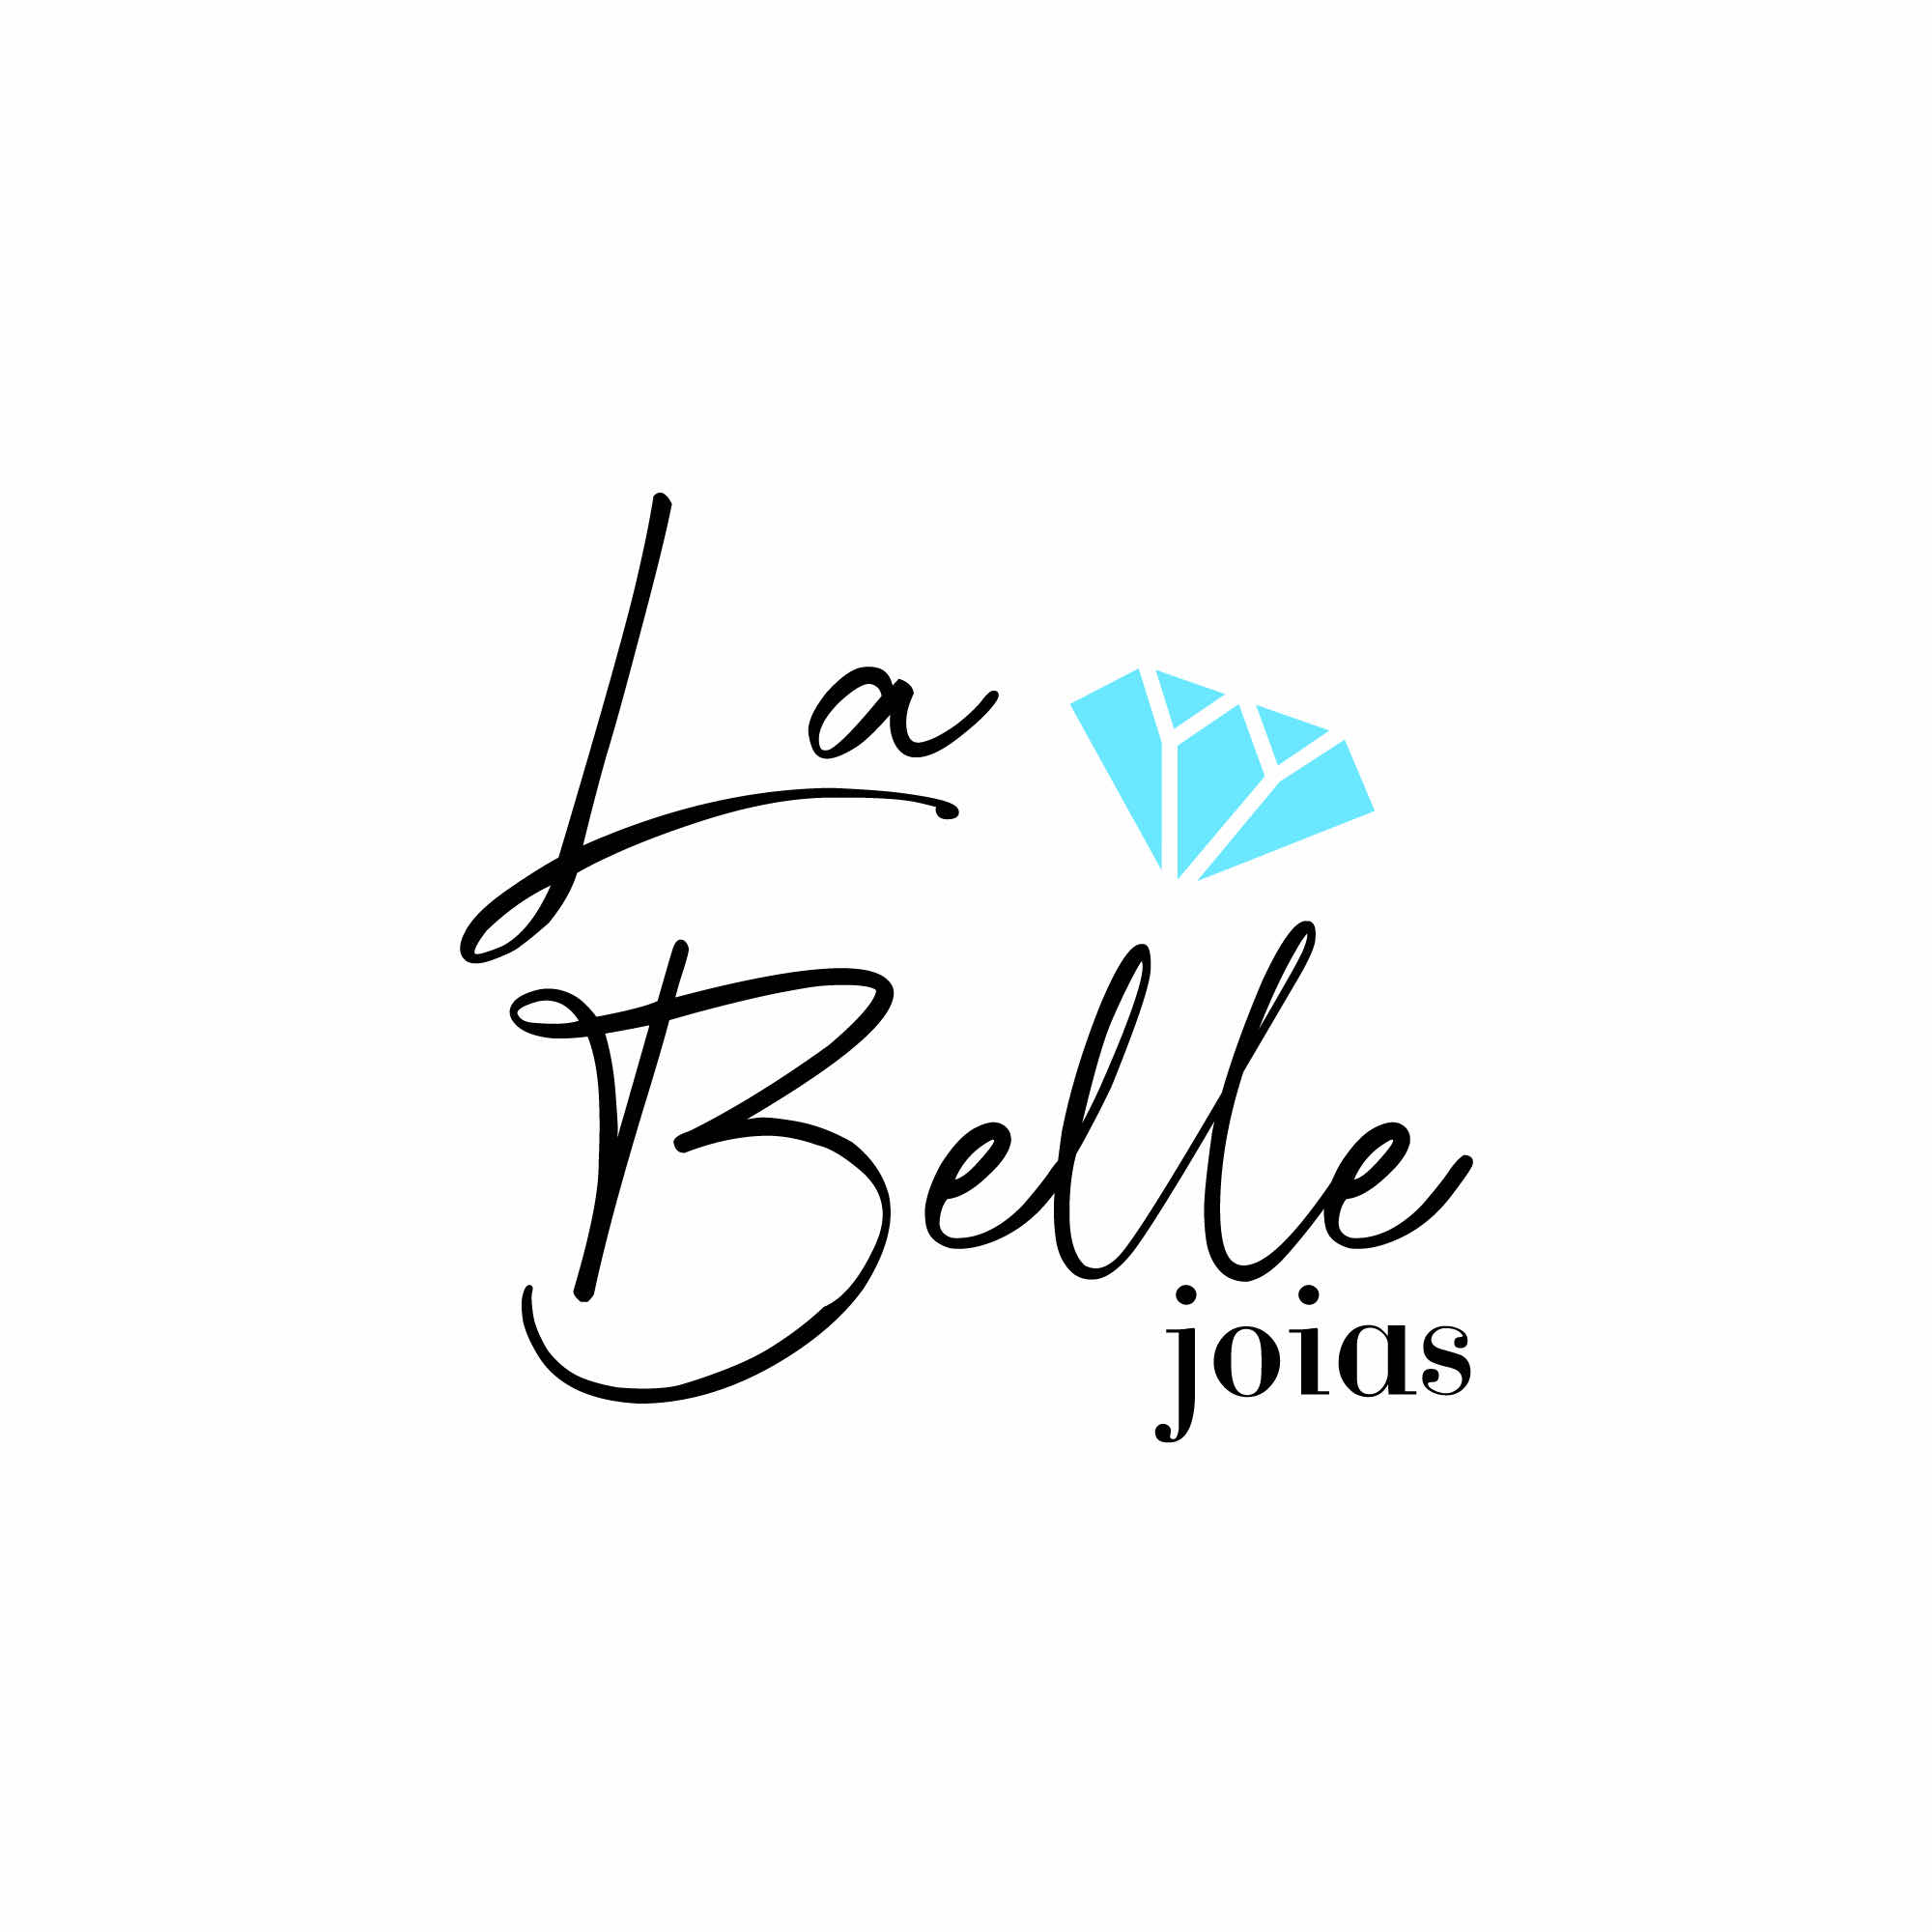 ✨ La Belle Joias